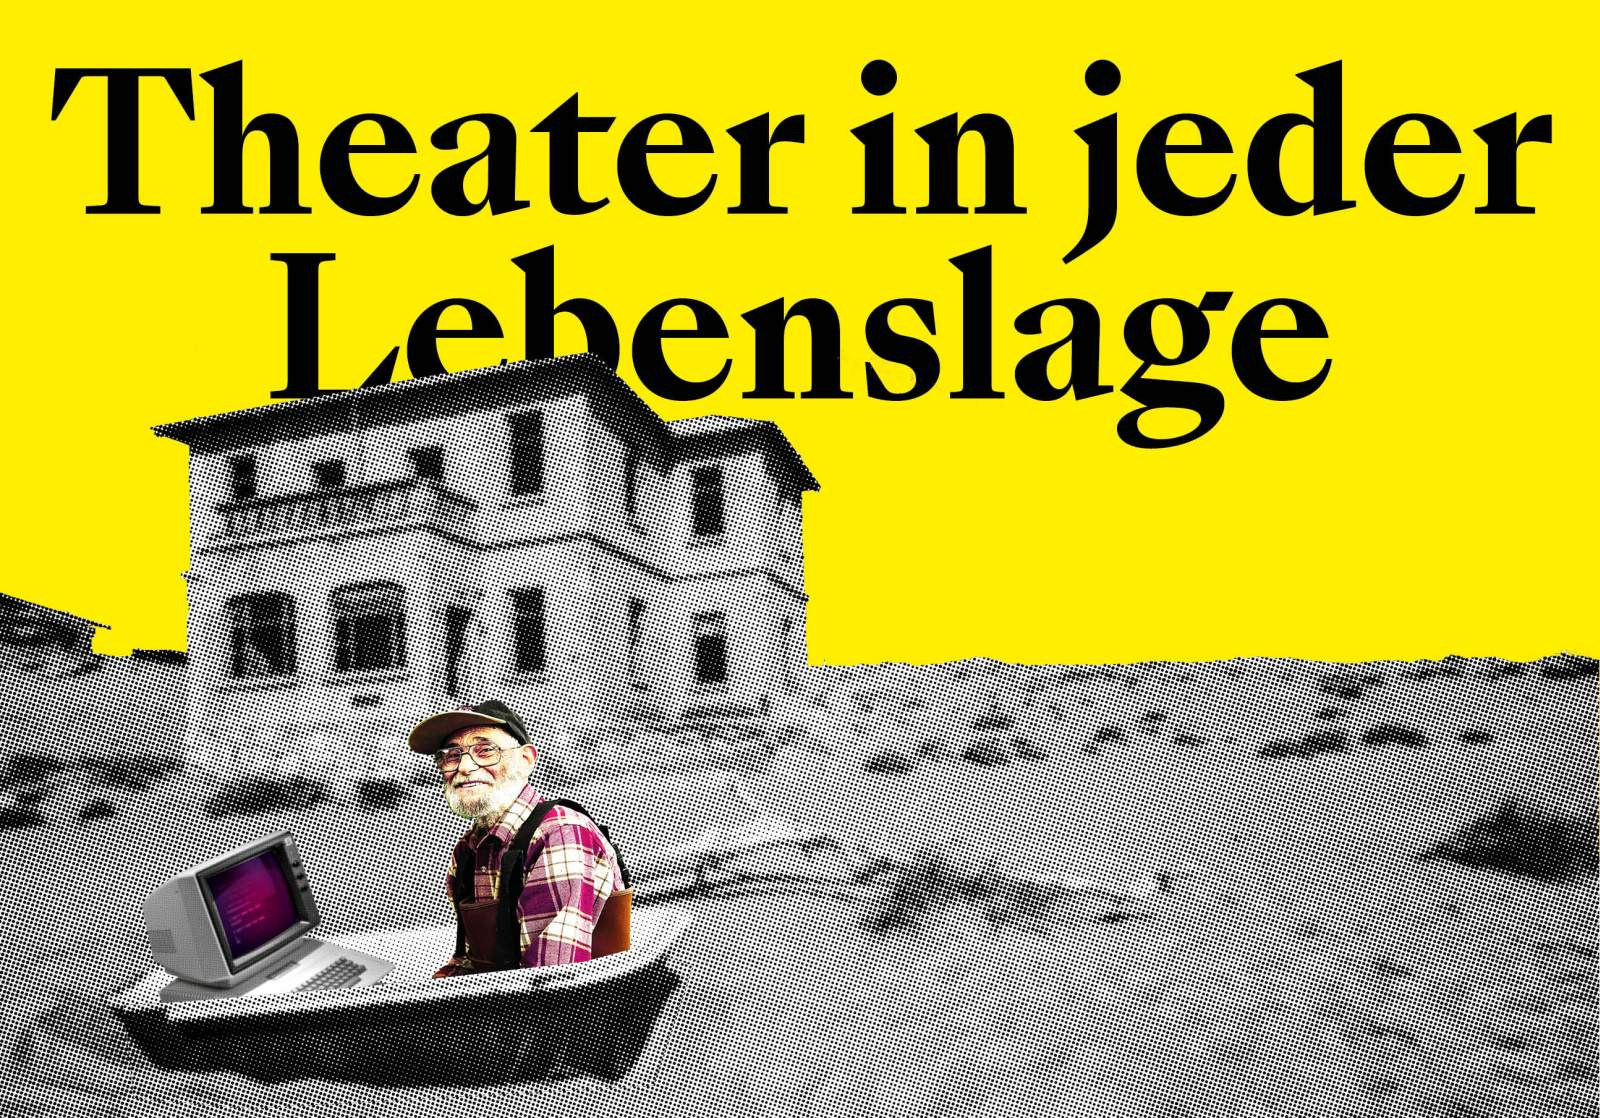 Theater in jeder Lebenslage